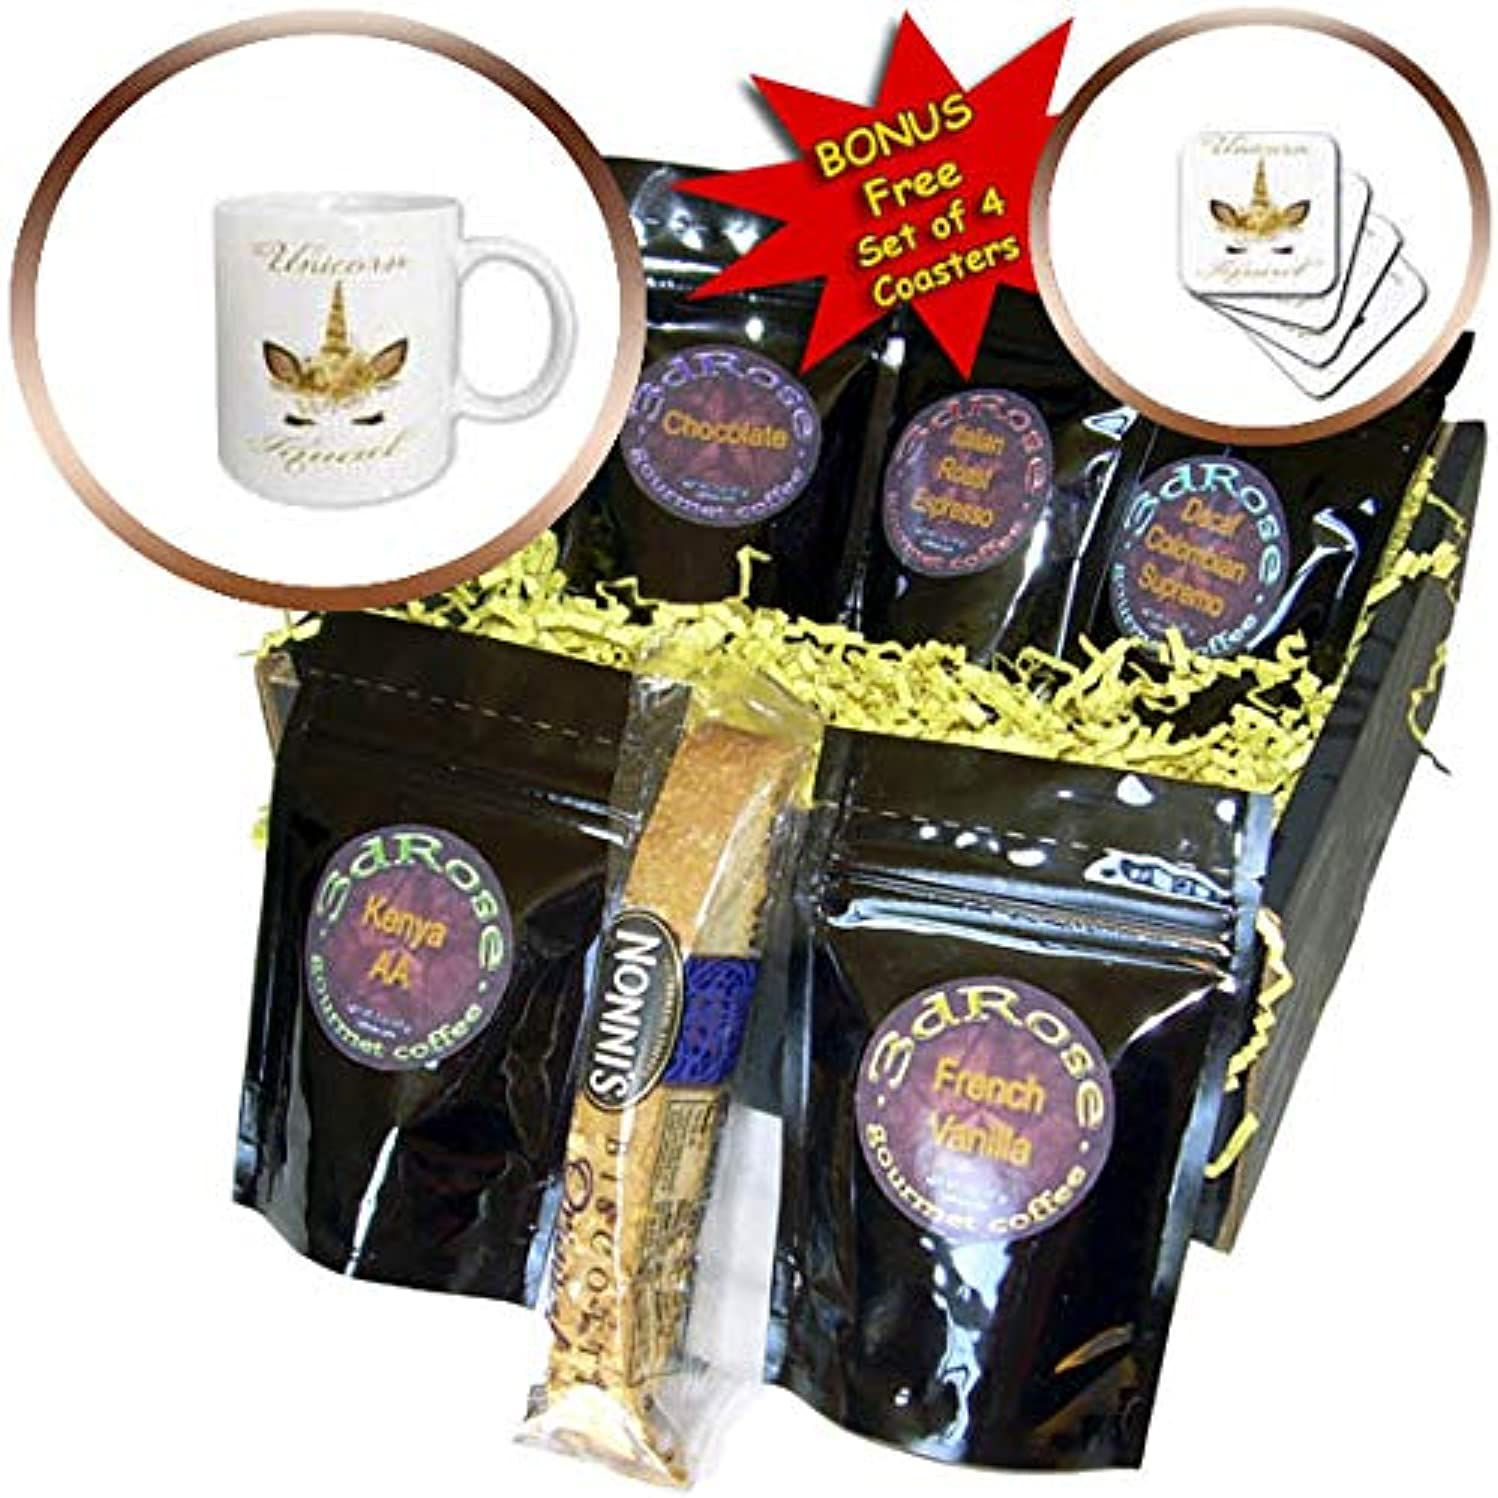 3dRose Anne Marie Baugh - Quotes, Sayings, and Typography - Unicorn Squad With A Pretty Image Of A Gold Unicorn Face - Coffee Gift Baskets - Coffee Gift Basket (cgb_297043_1)